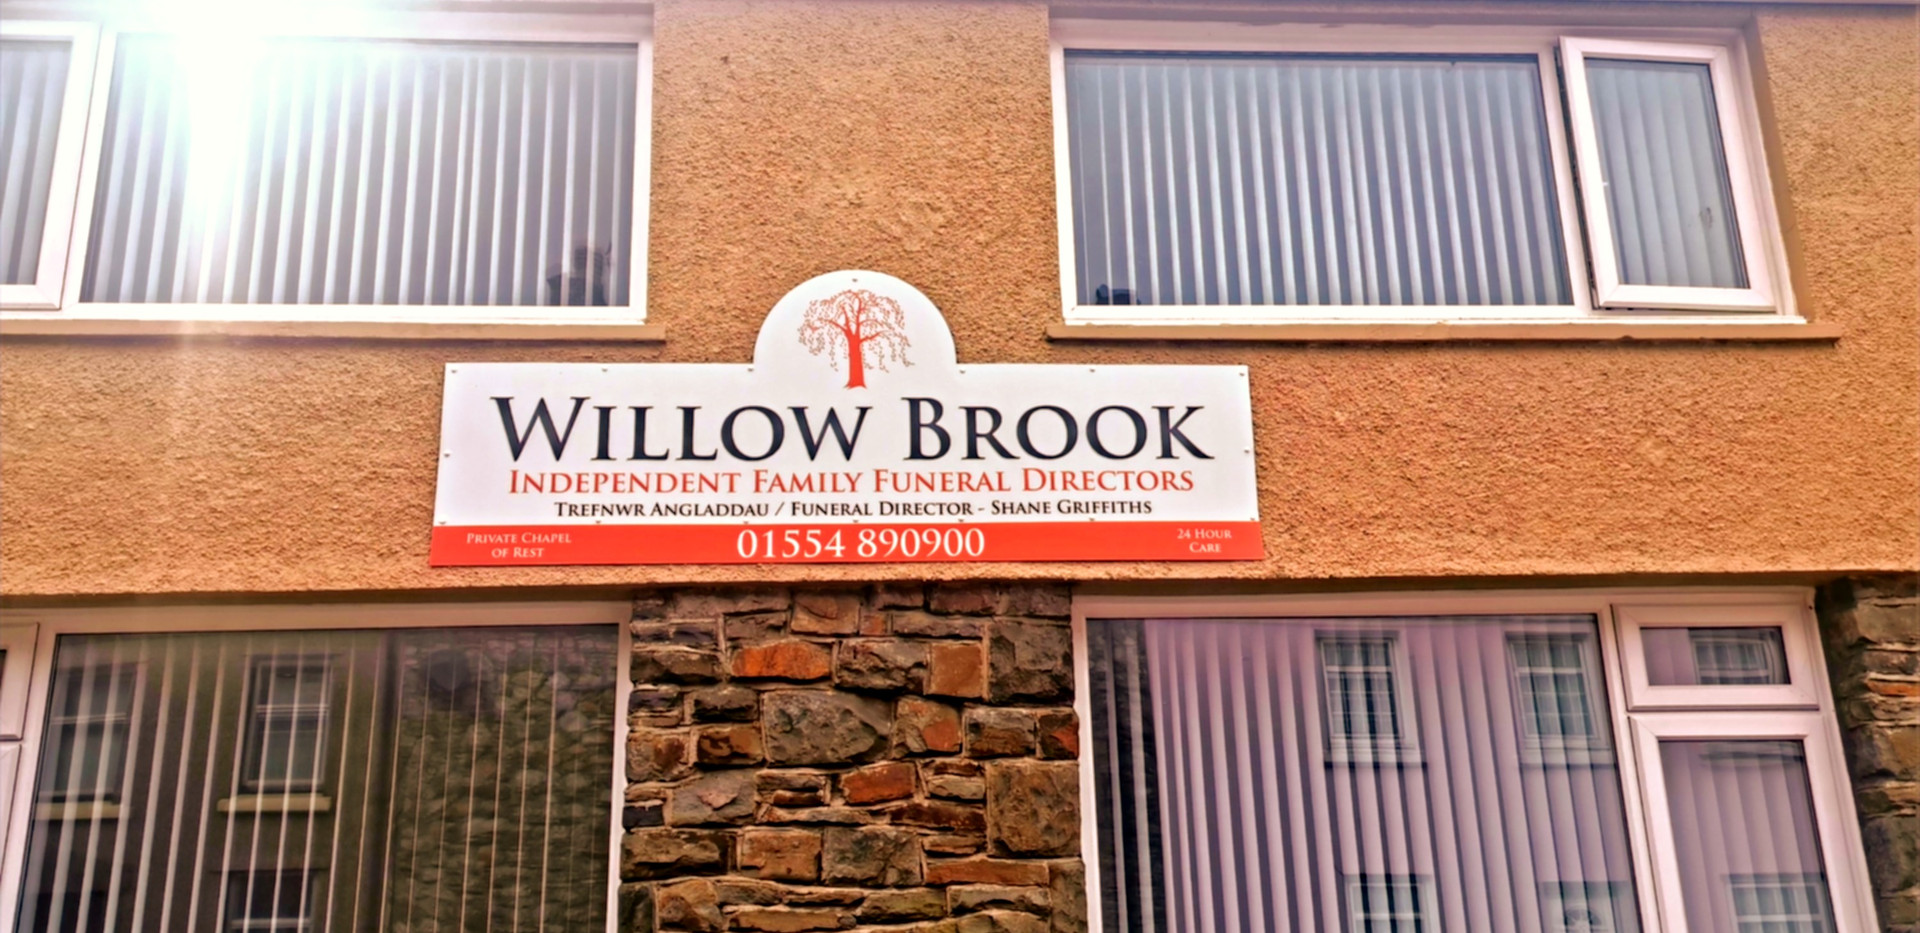 Willow Brook